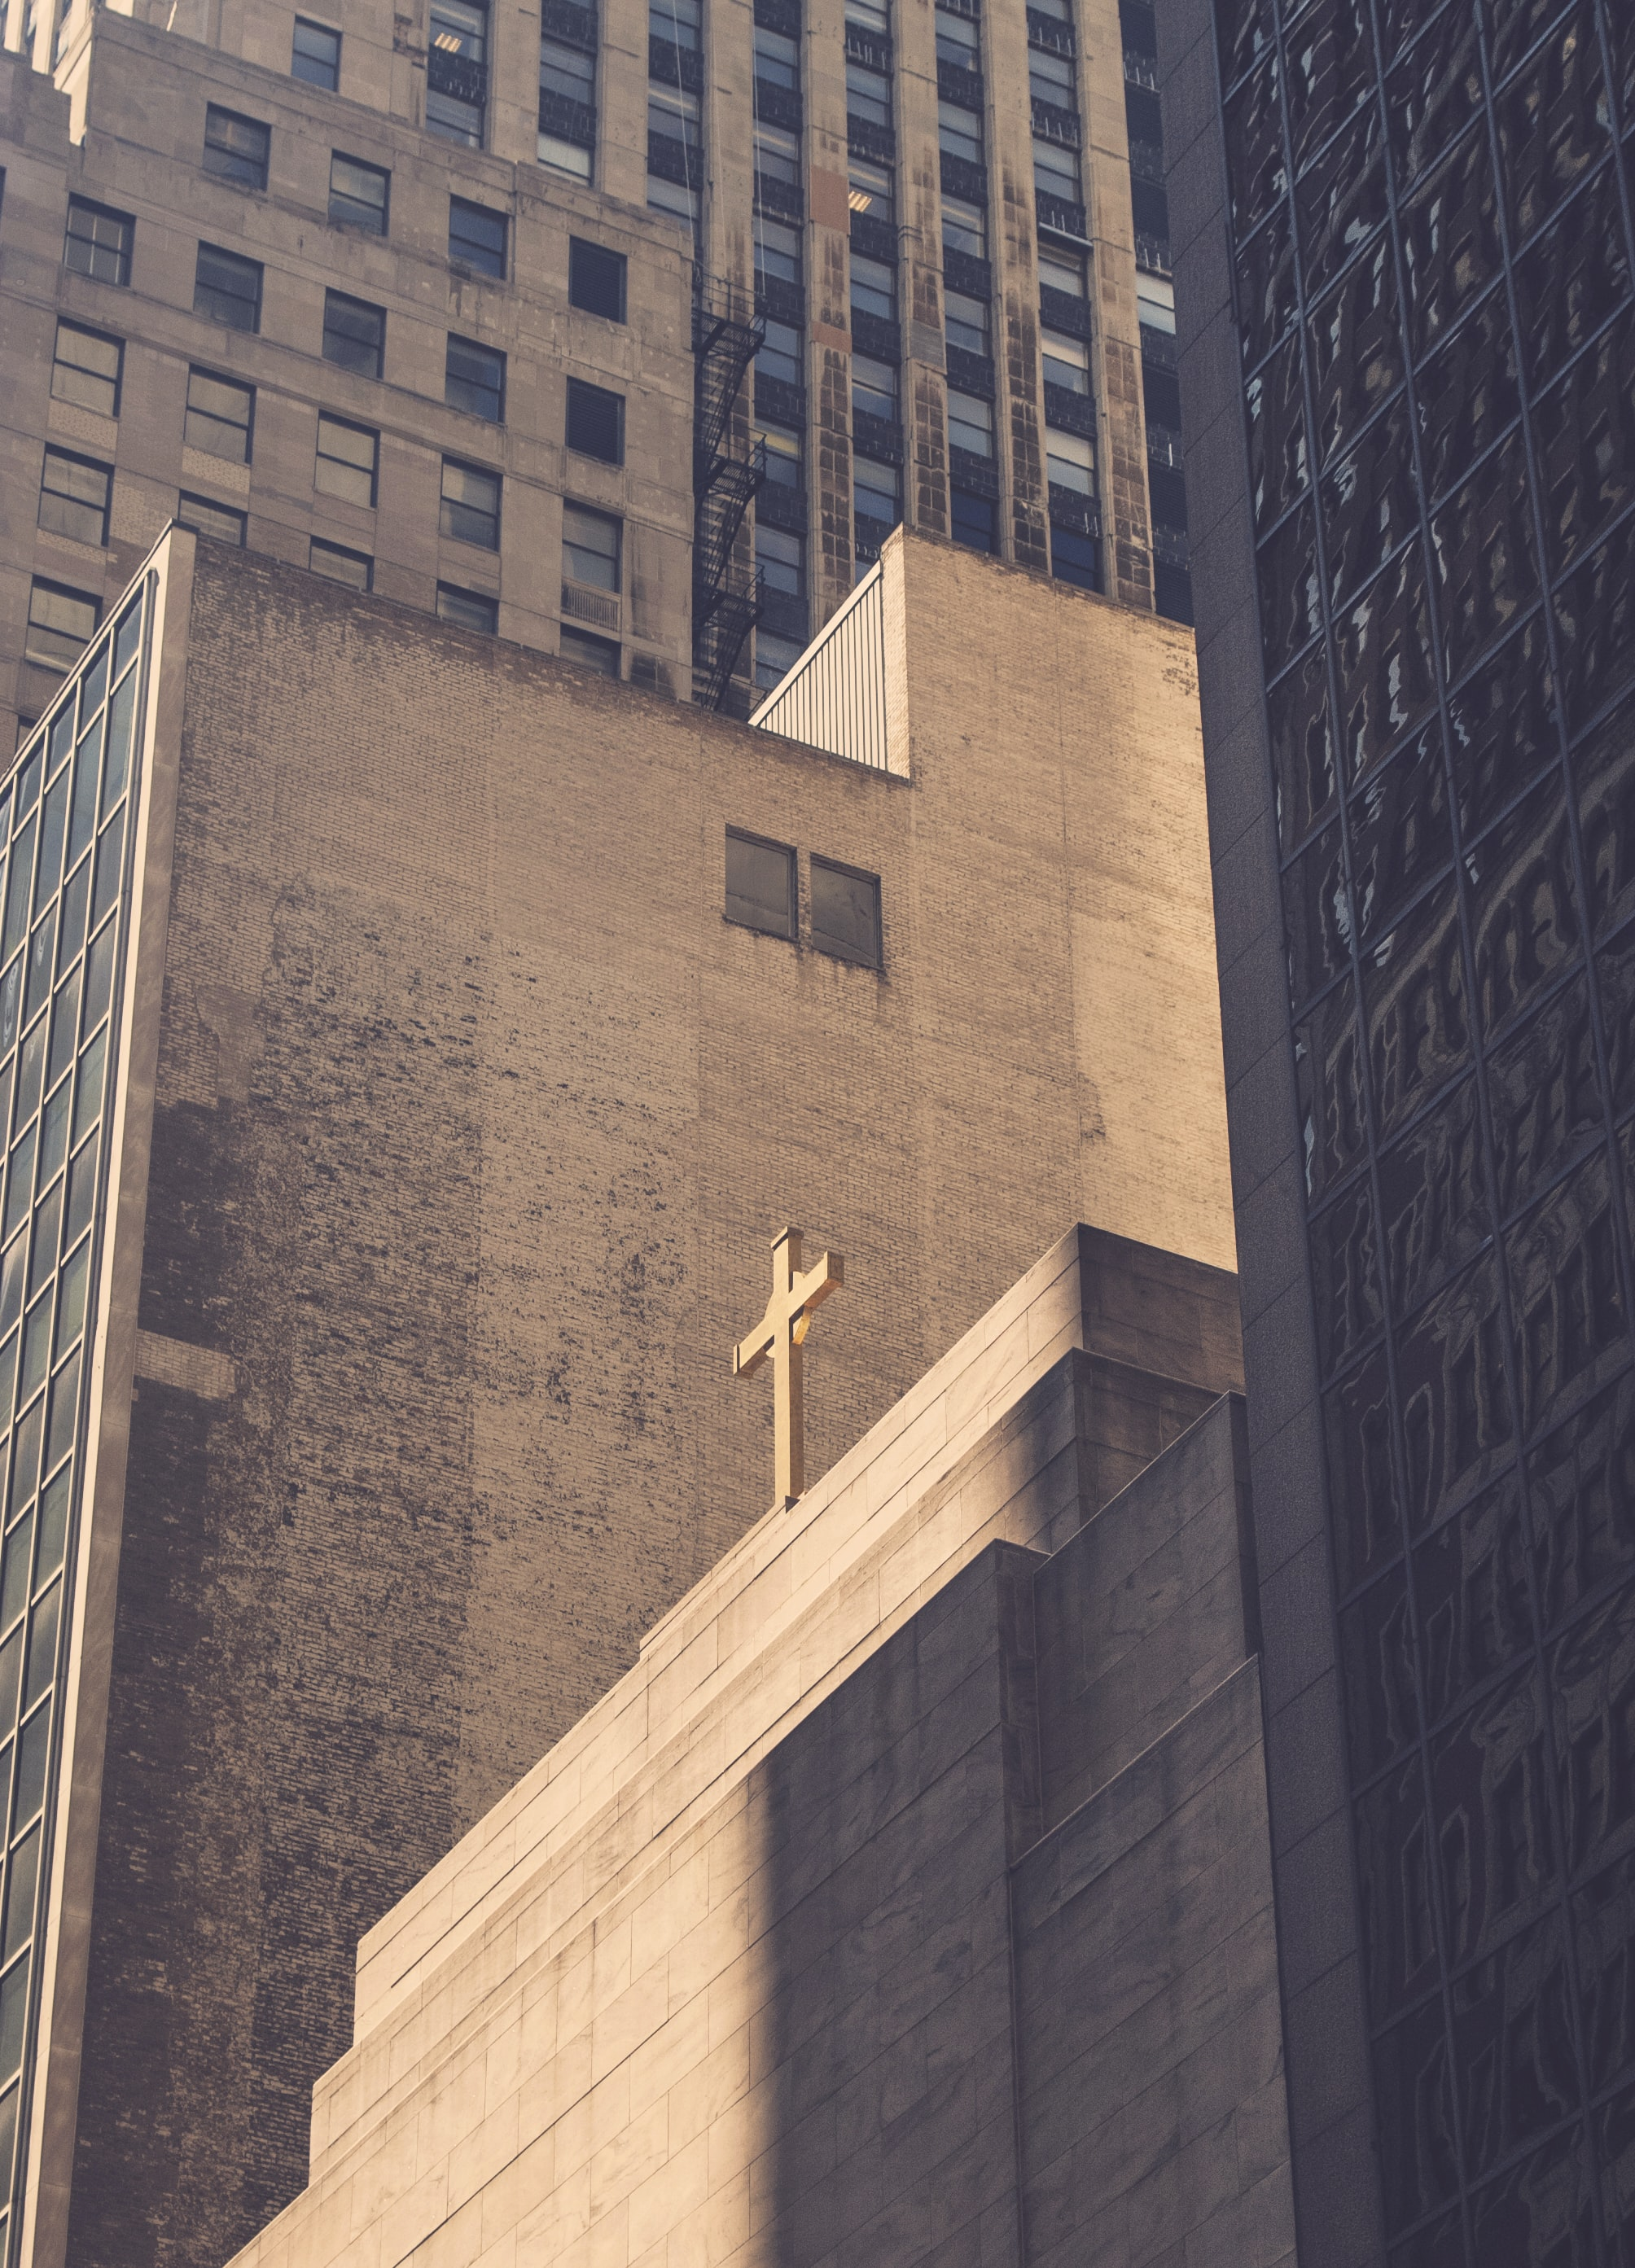 low angle photography of concrete building with cross